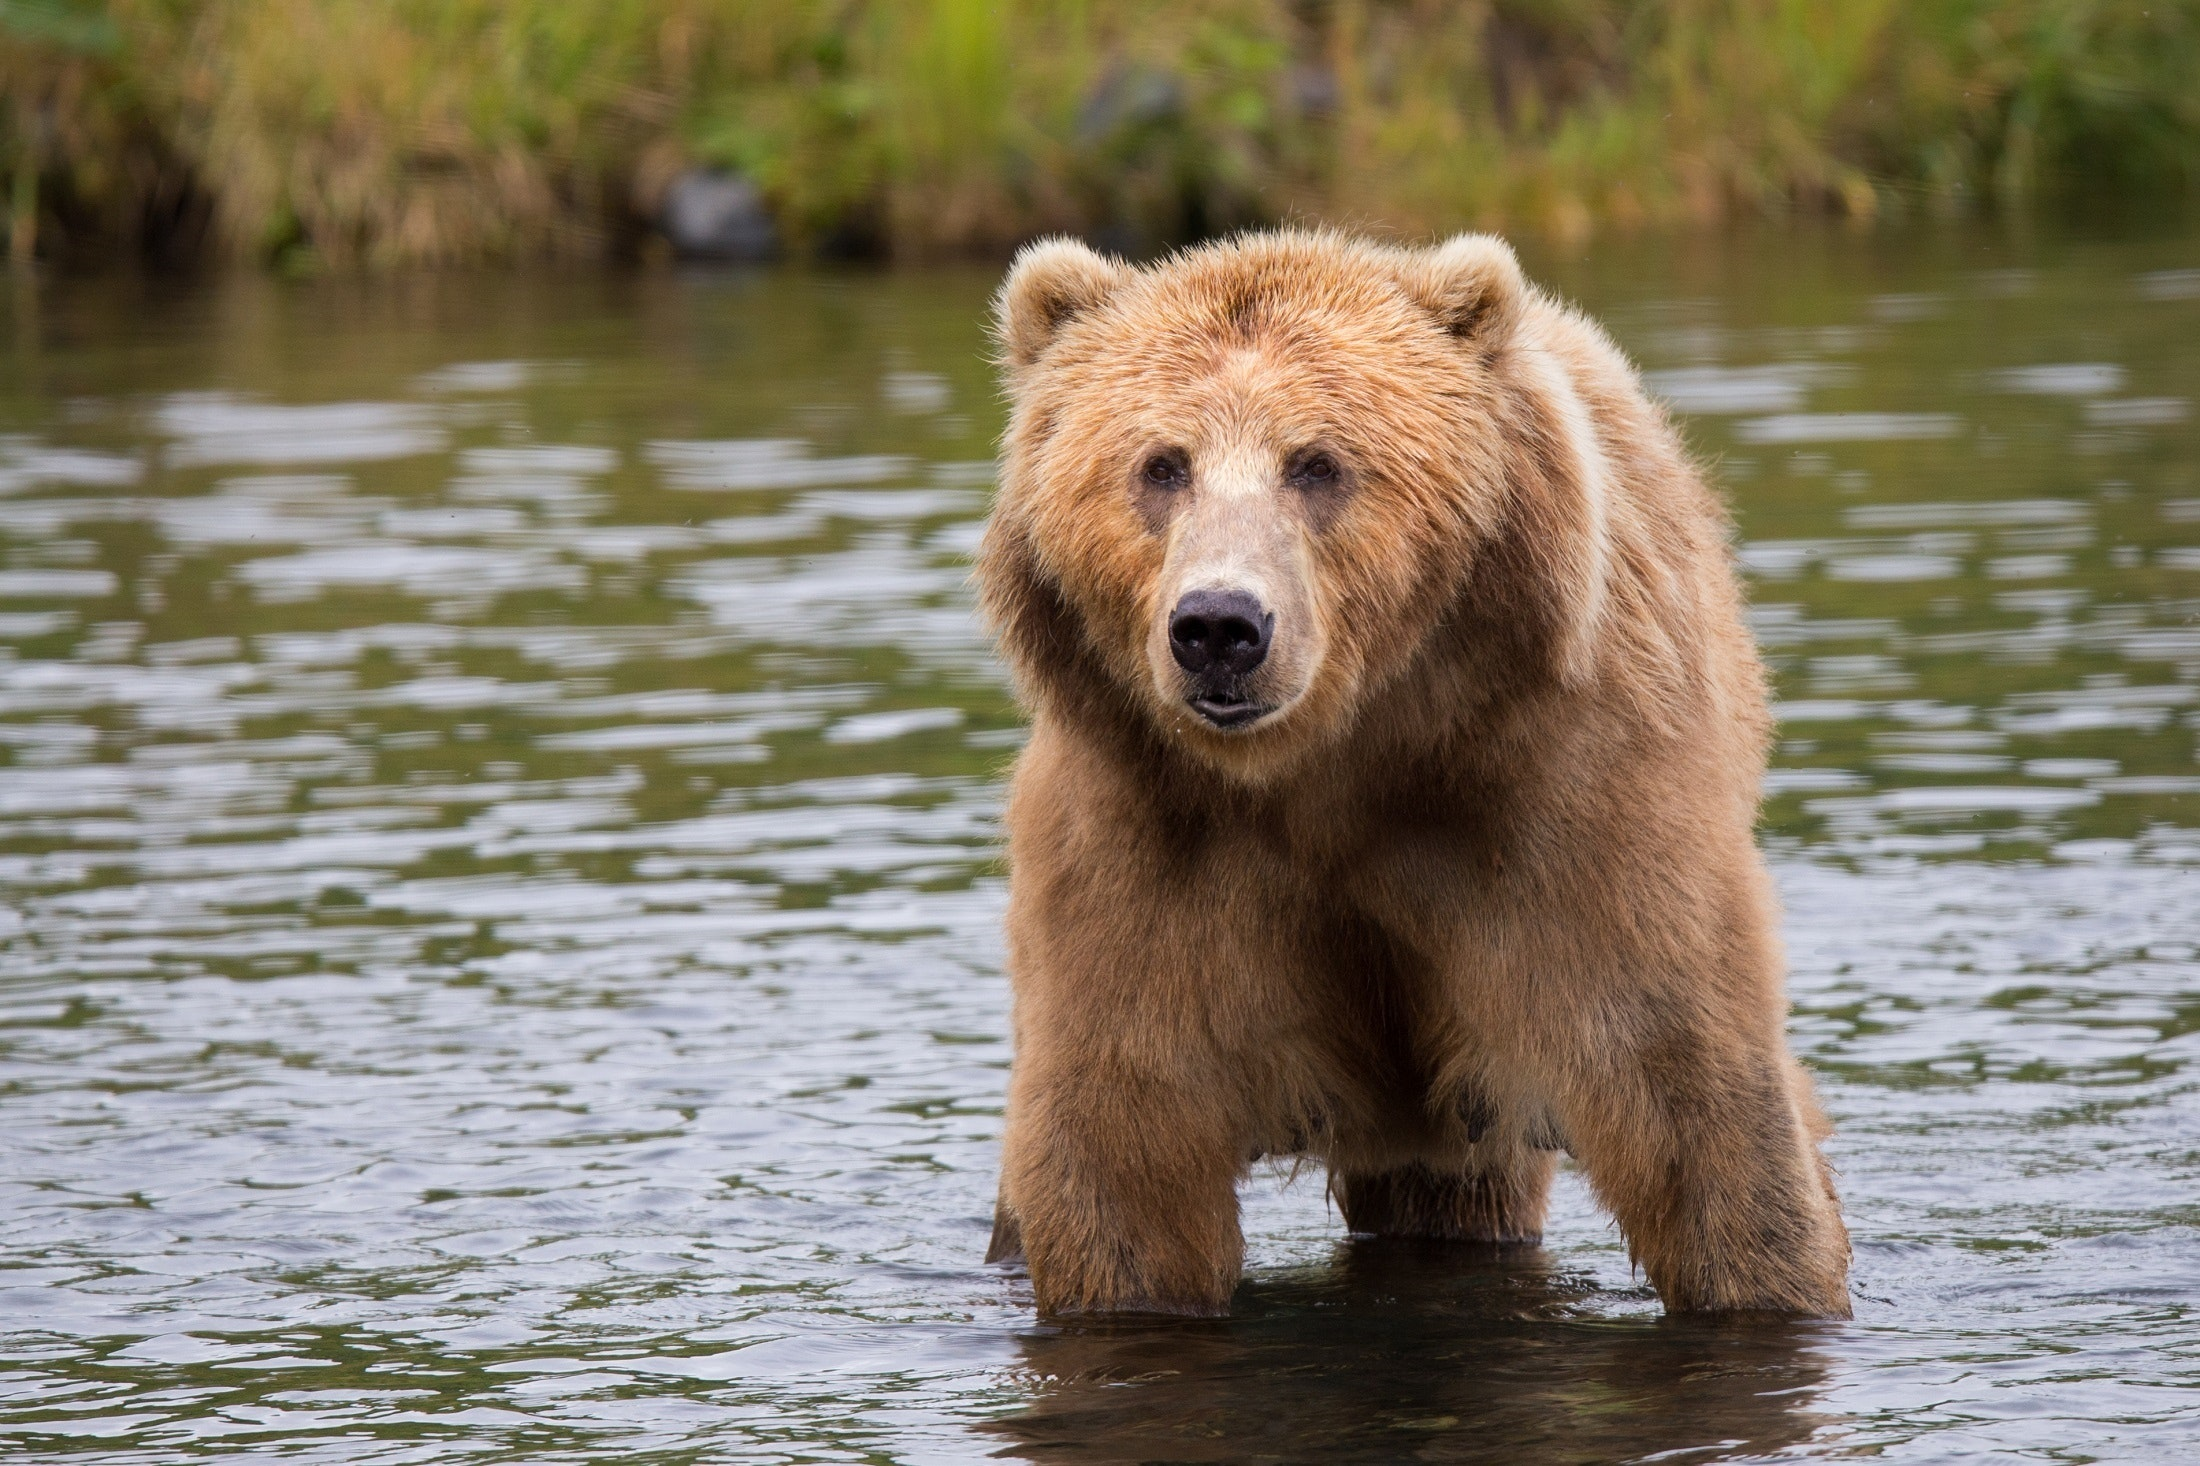 Brown bear in body of water during daytime photo